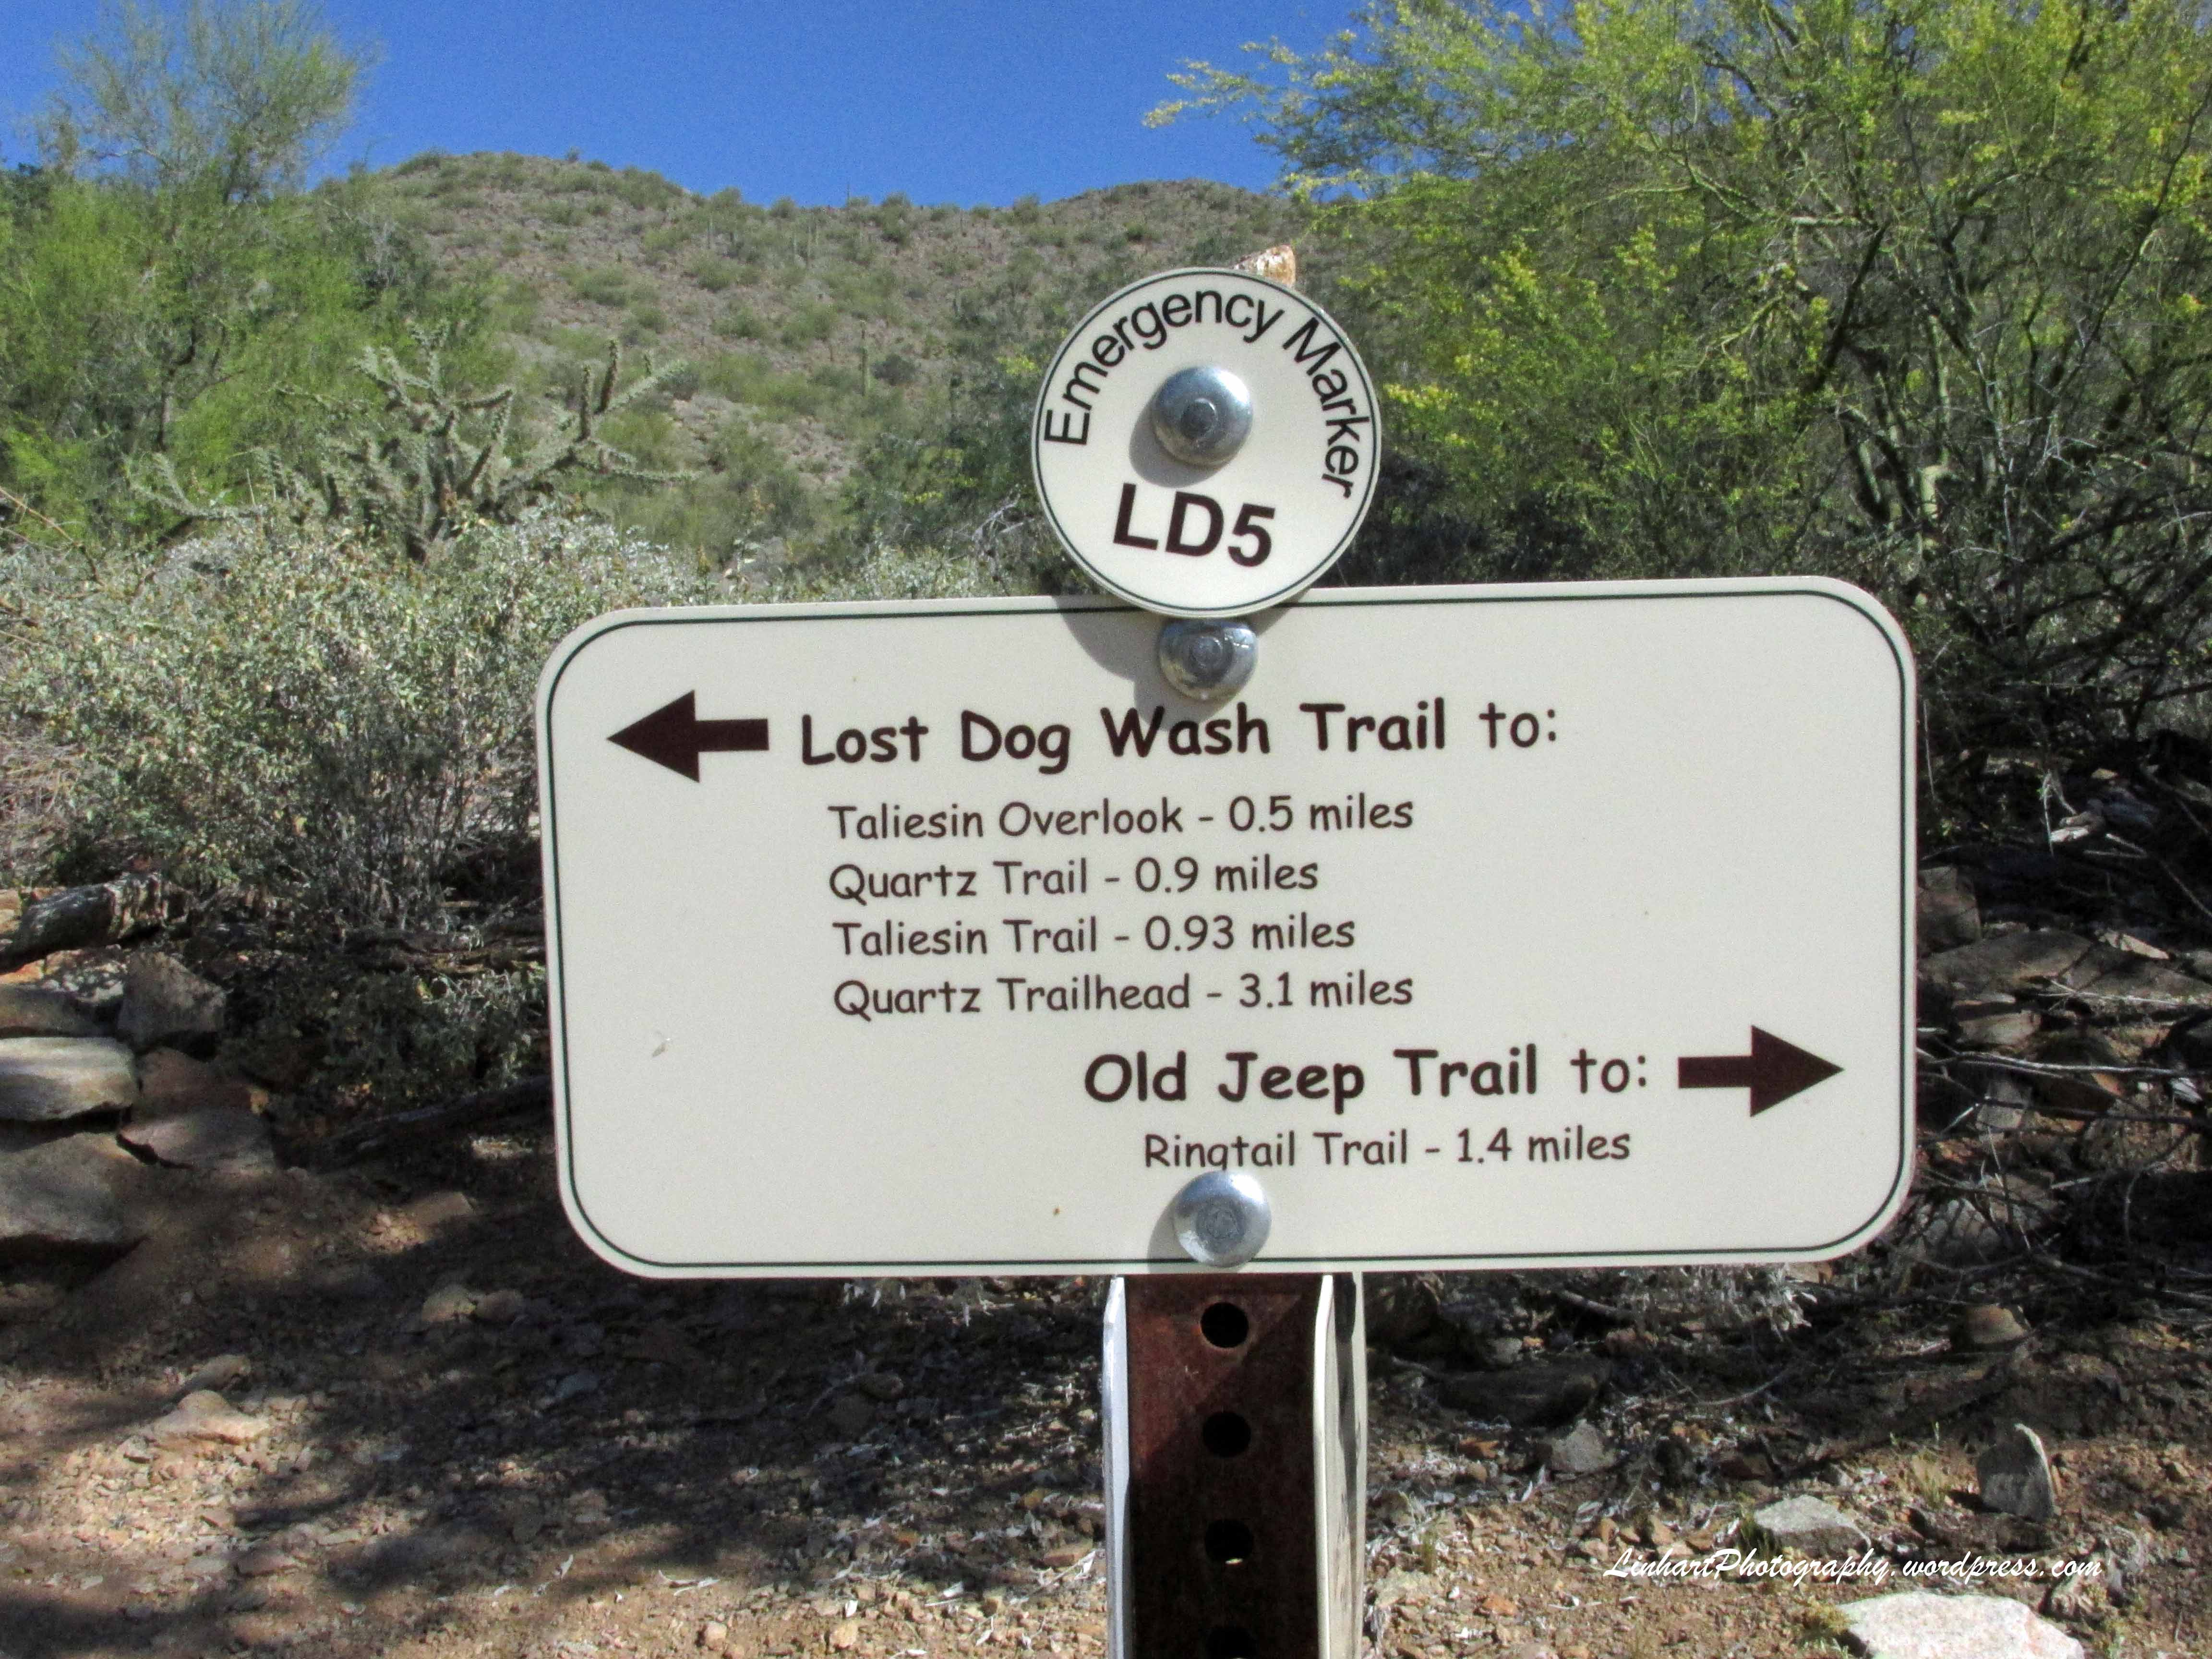 Lost Dog Wash Trail Linhart Photography